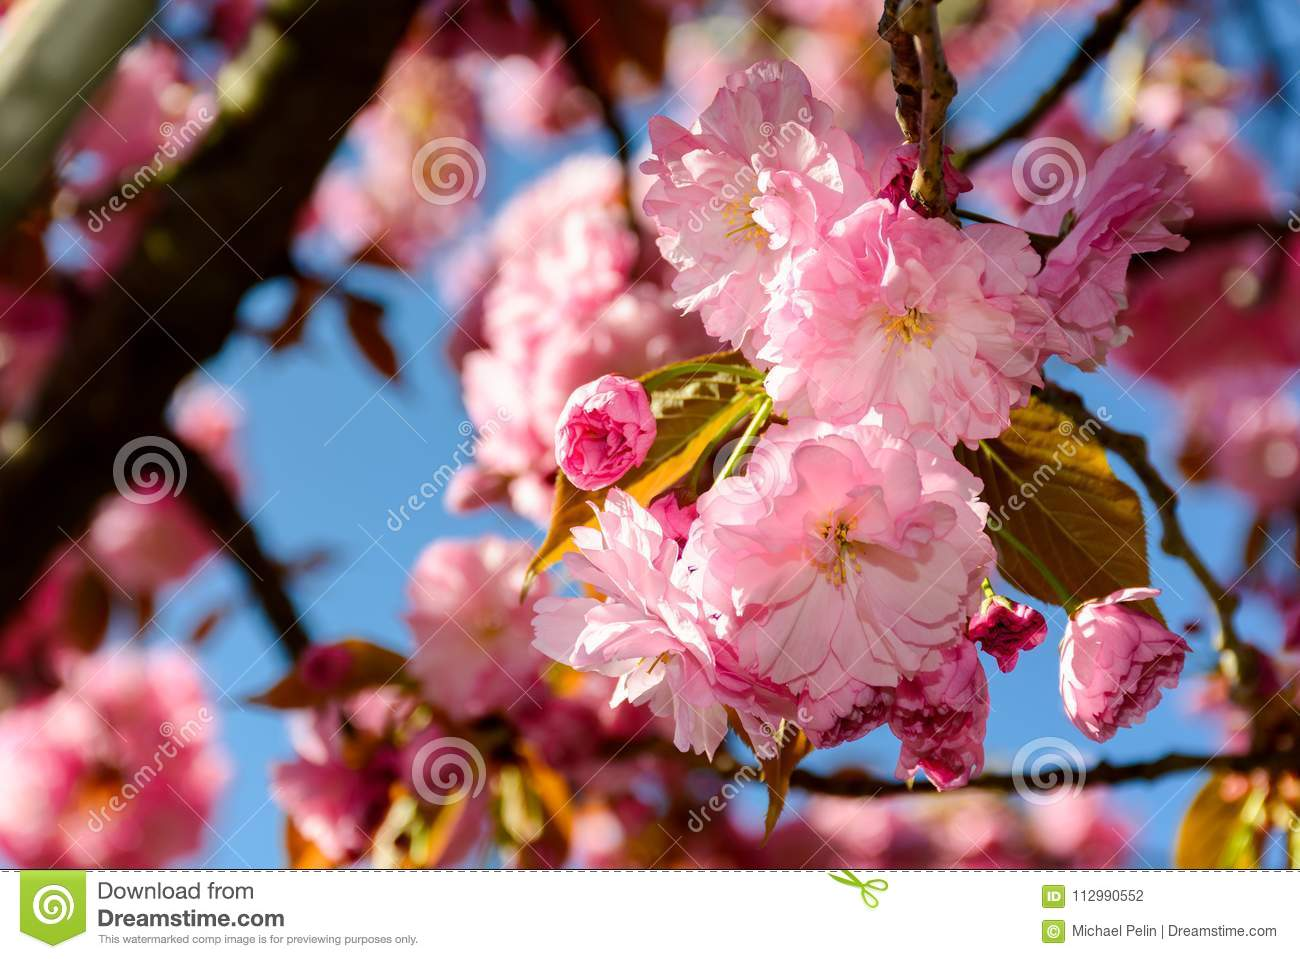 Pink flowers of cherry blossom among the branches